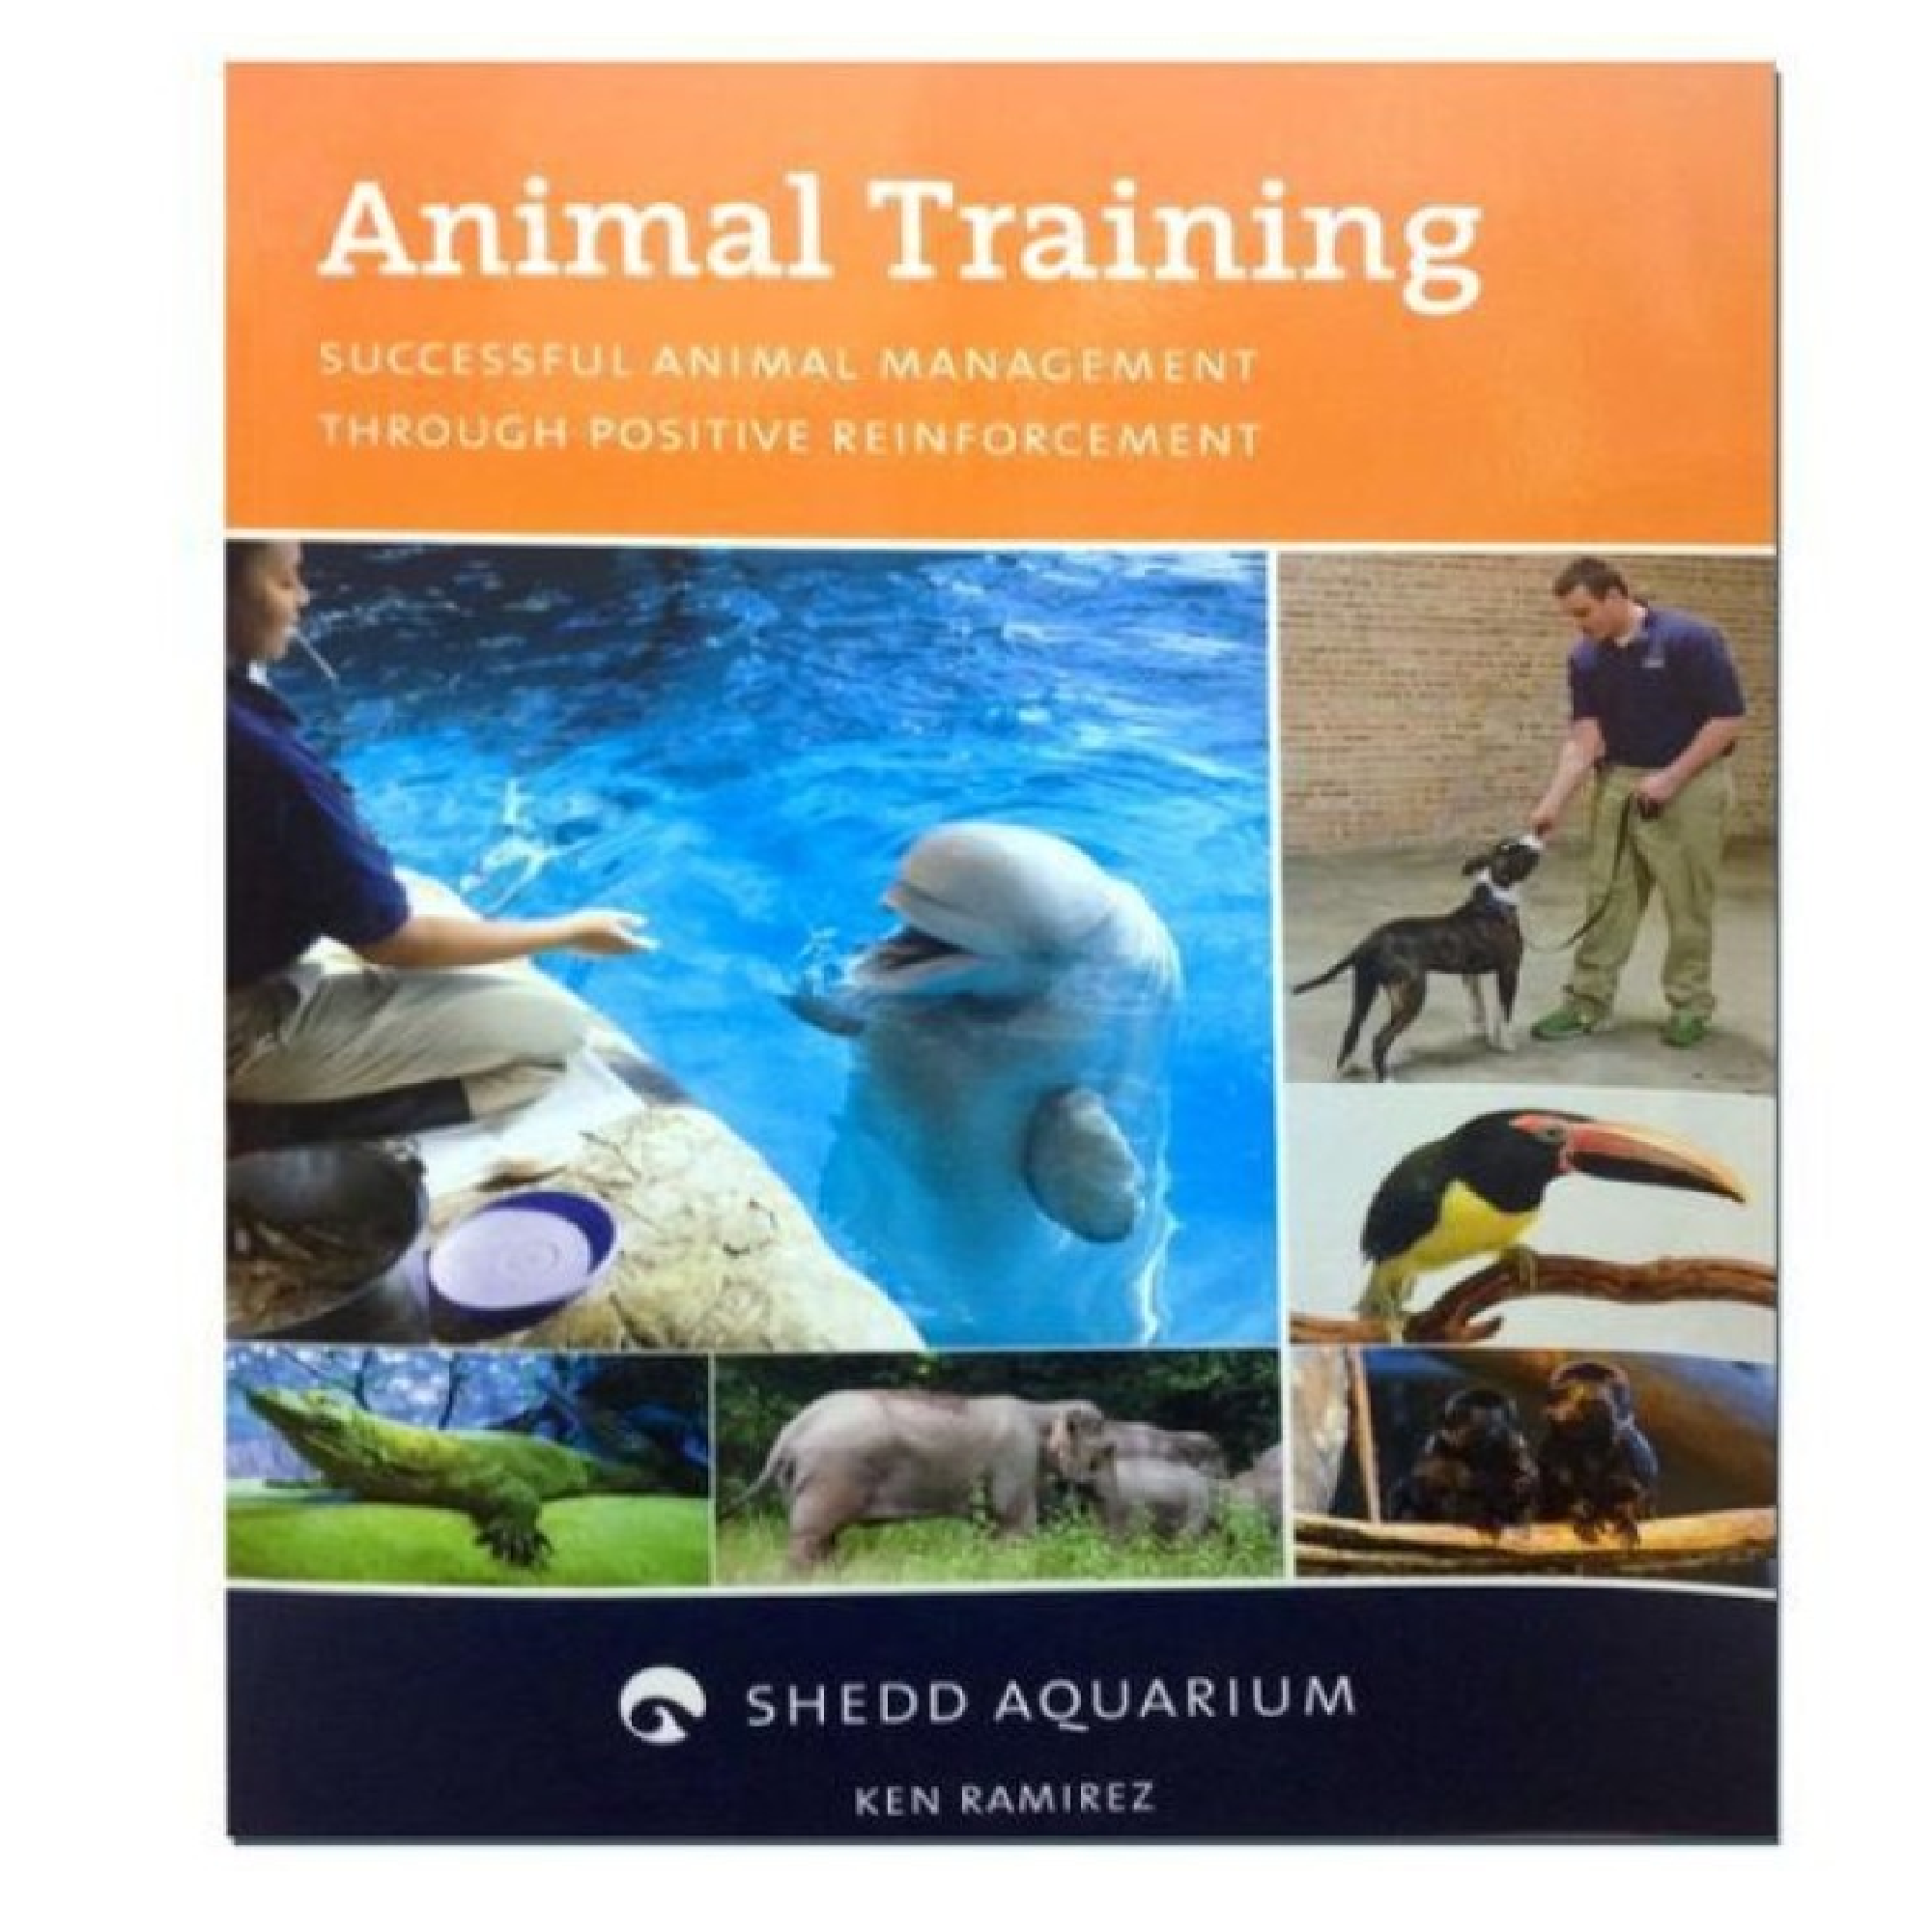 Animal Training - Ken Ramirez